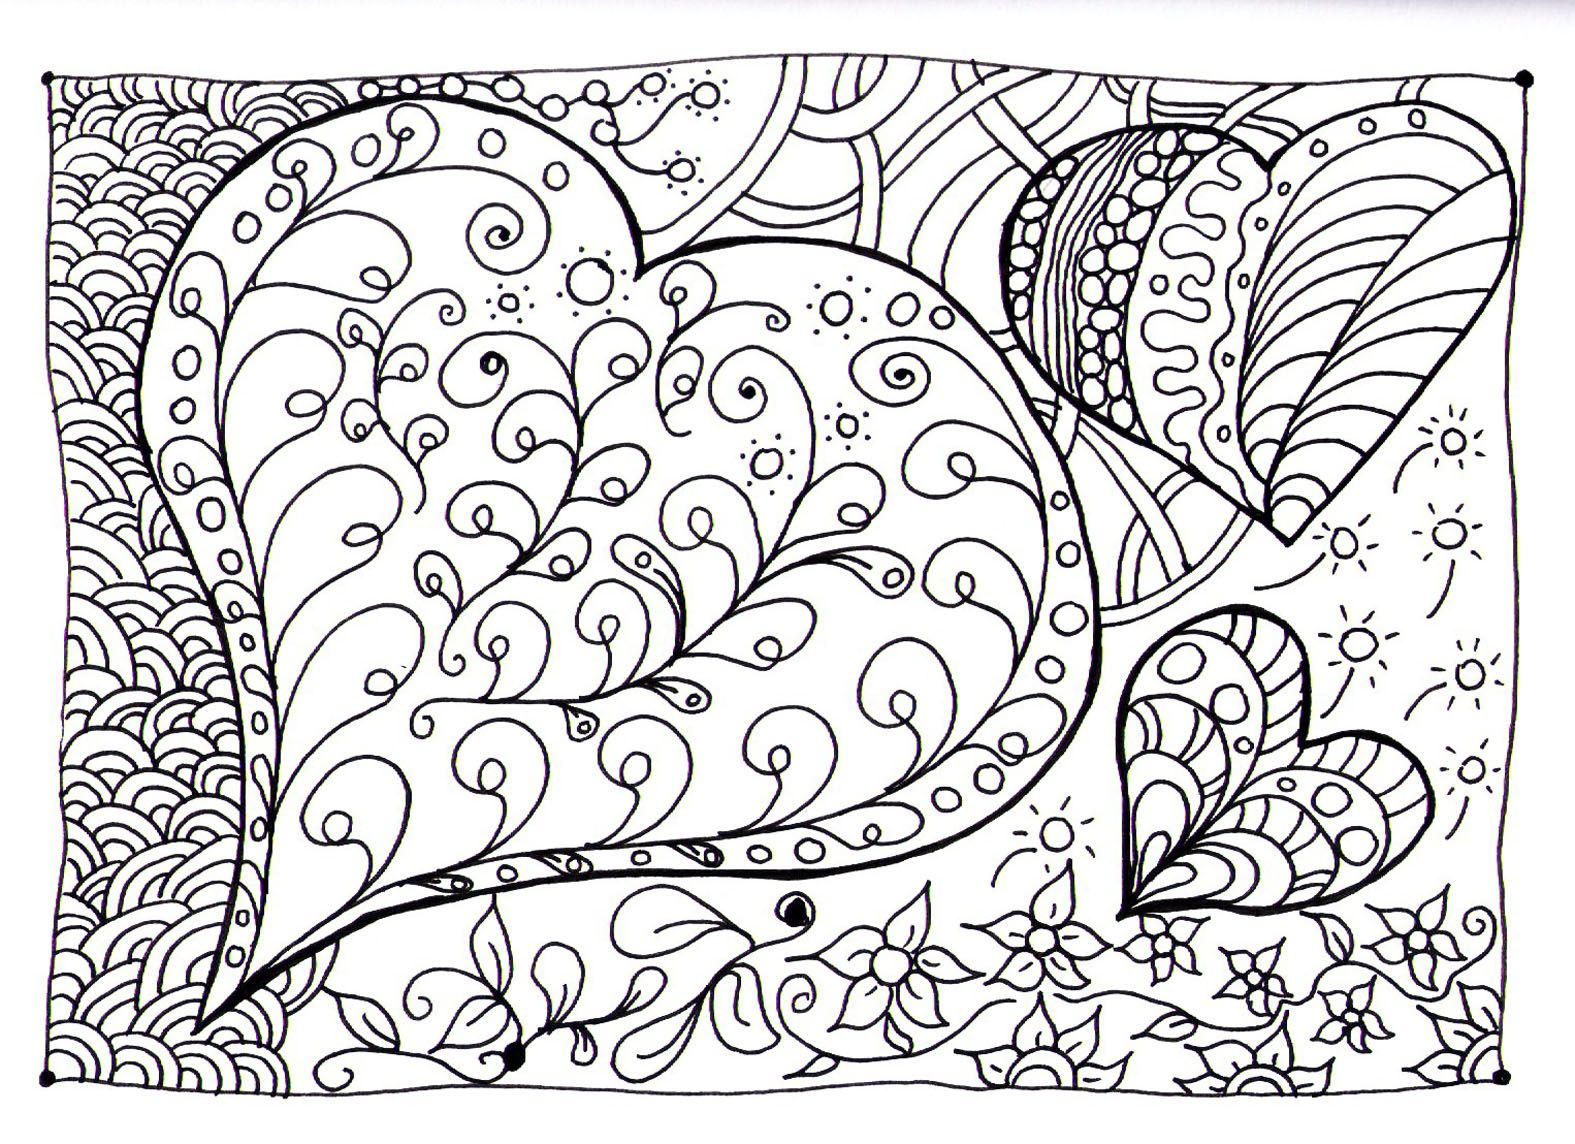 Zen coloring books for adults app - Free Coloring Page Coloring Heart Zen